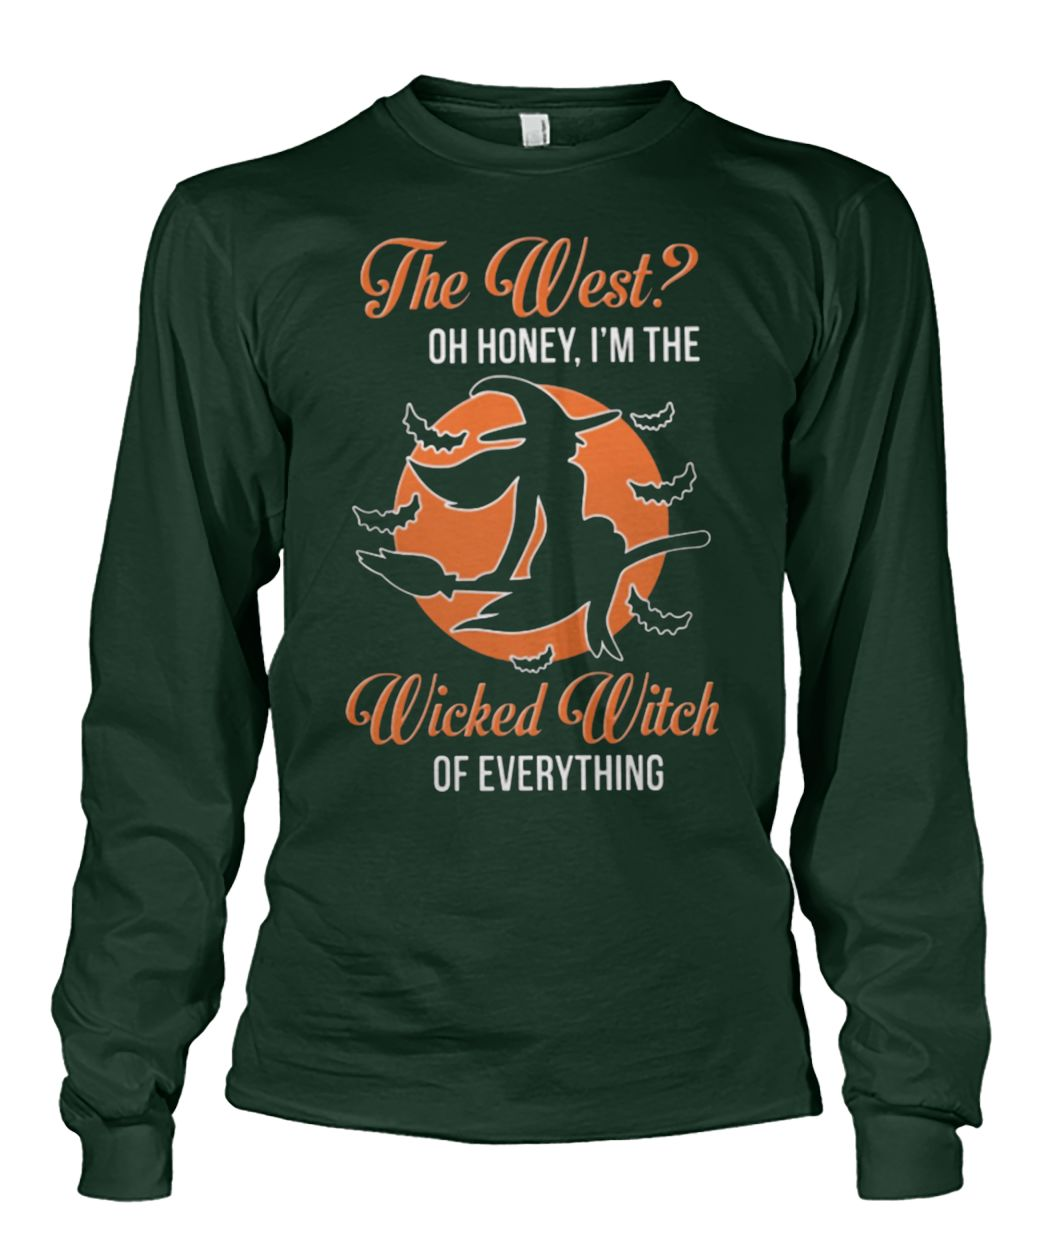 The west oh honey I'm the wicked witch of everything unisex long sleeve